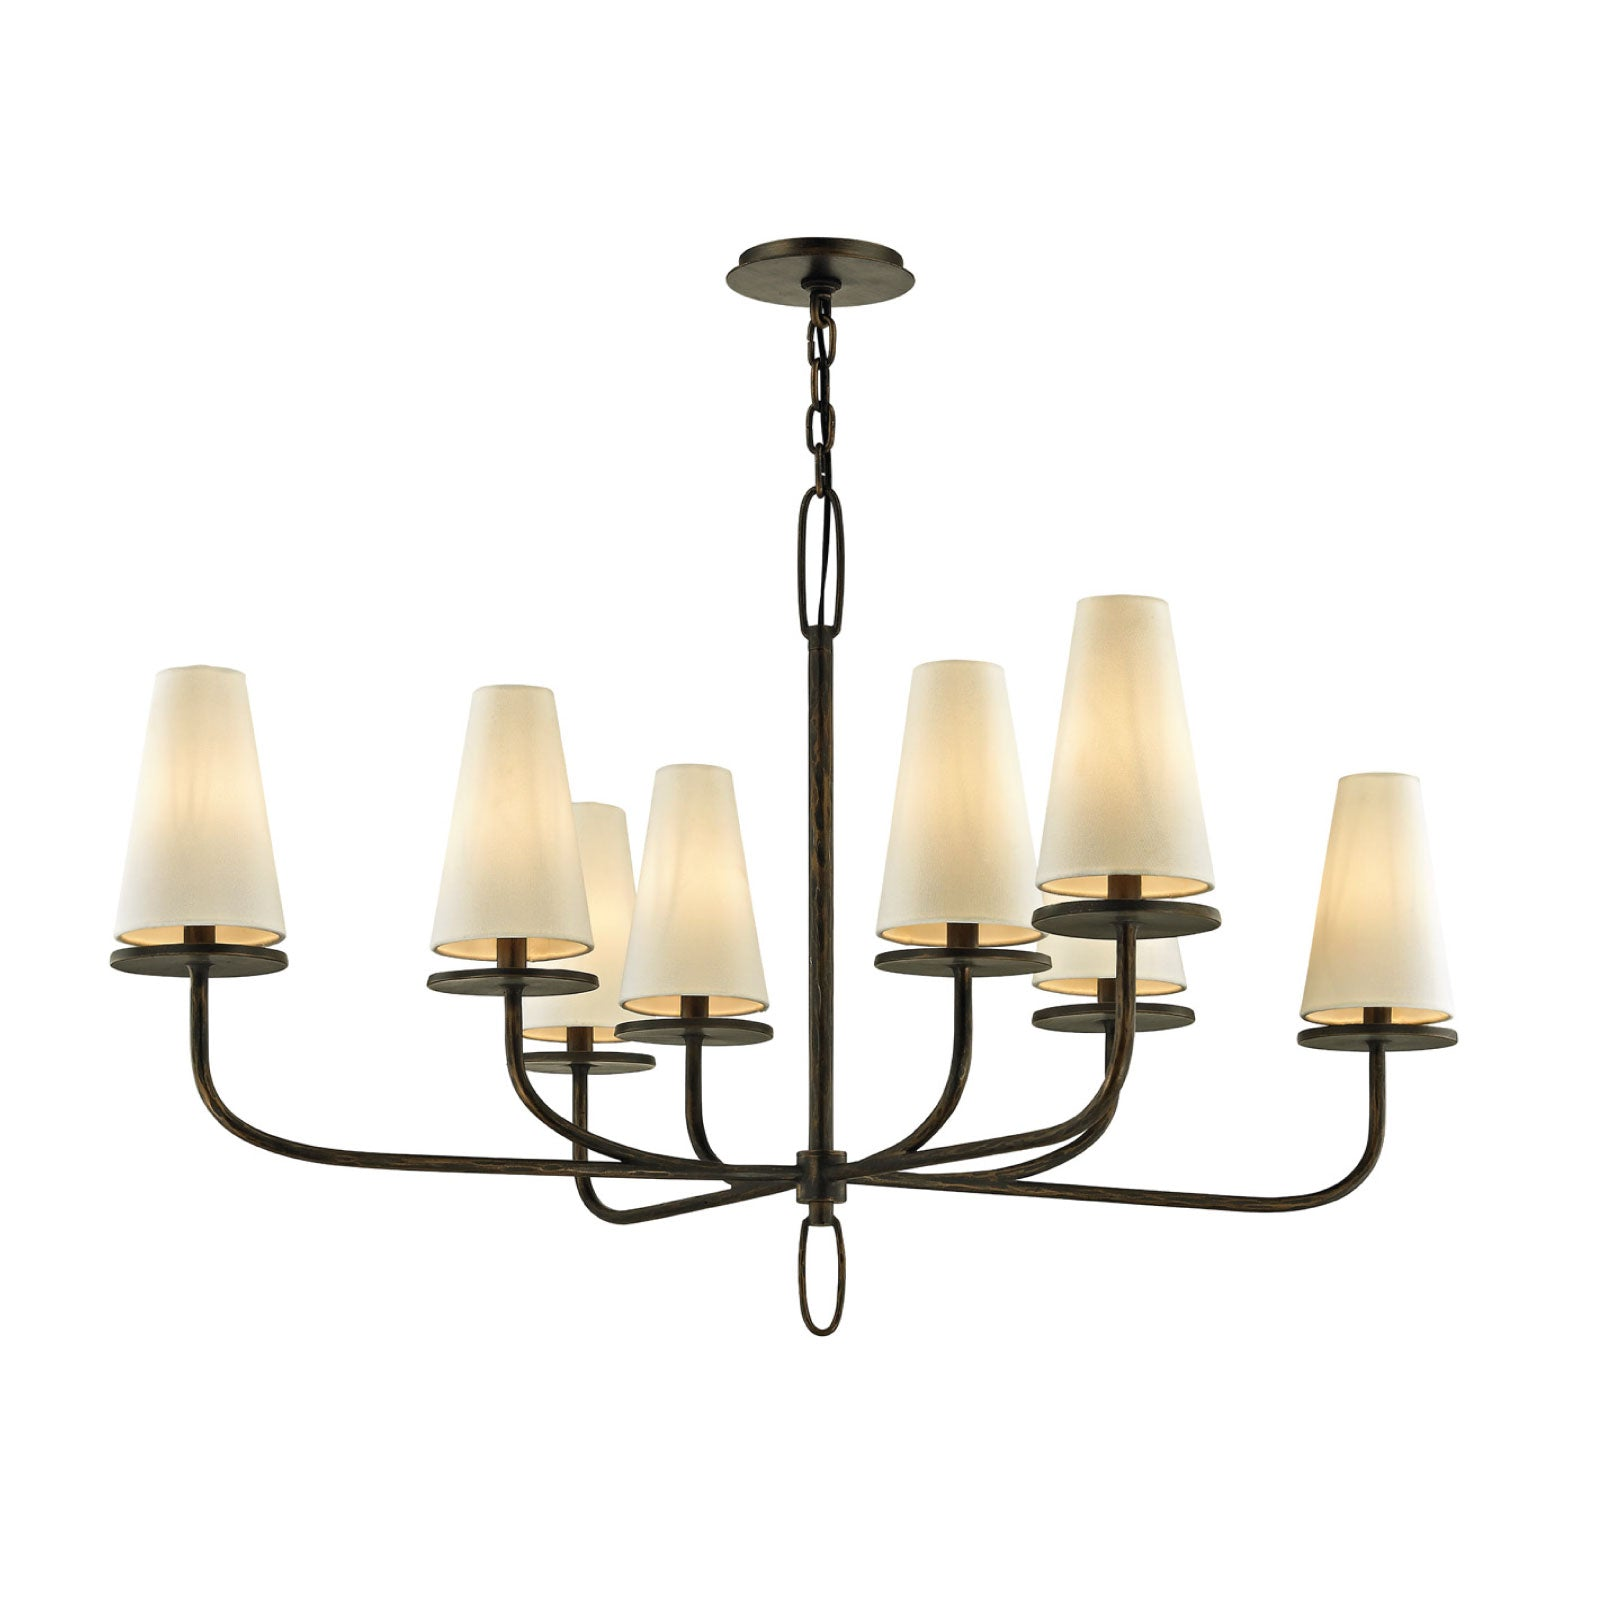 Rosecliff Chandelier in Bronze - Large